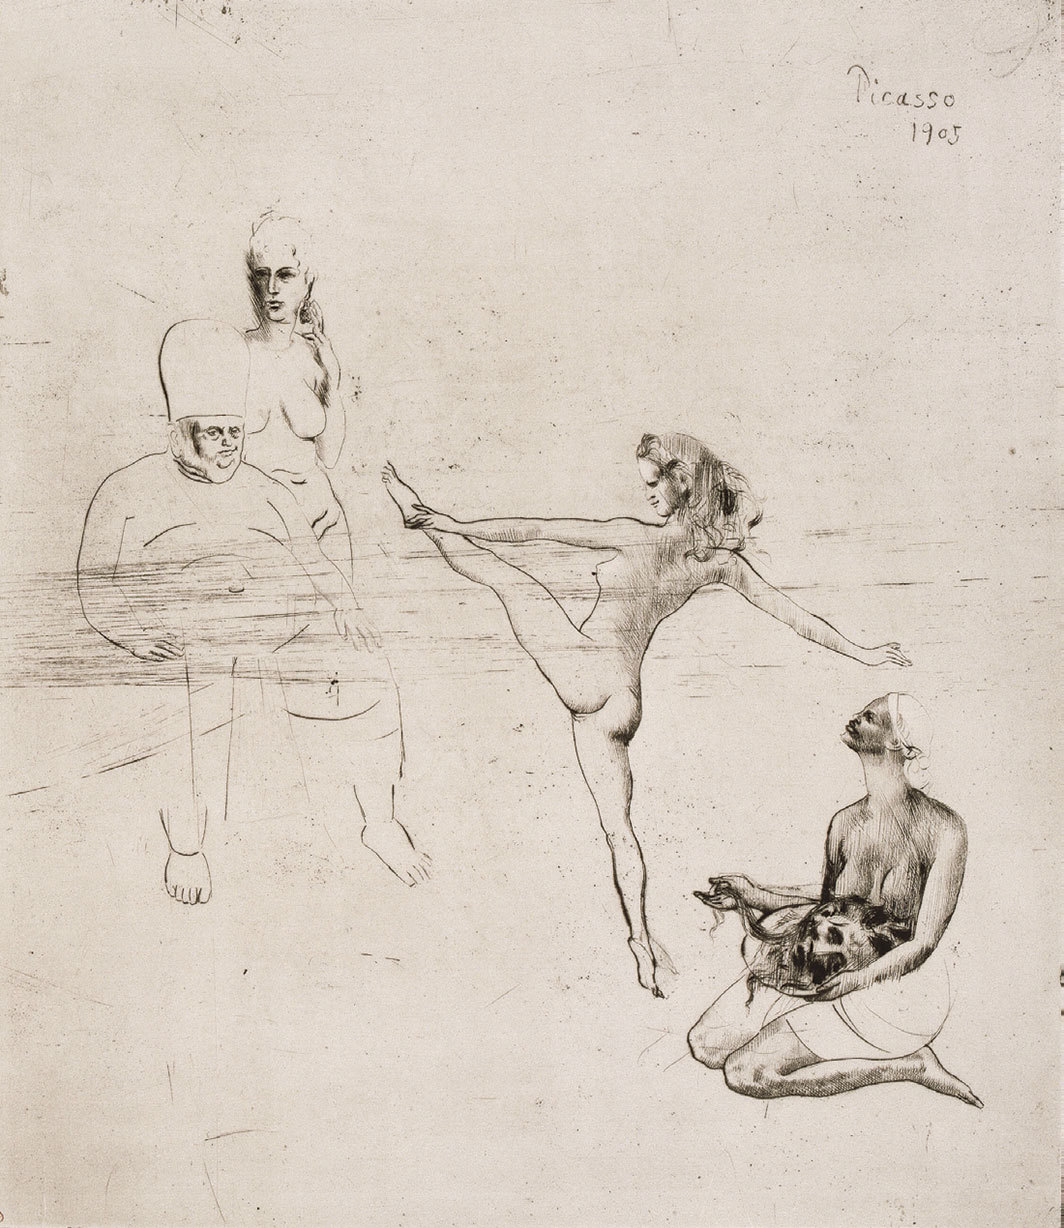 "Pablo Picasso, Salomé, 1905, drypoint etching on paper, 15 7⁄8 × 13 3⁄4"". From the series ""Saltimbanques"" (Acrobats), 1905."